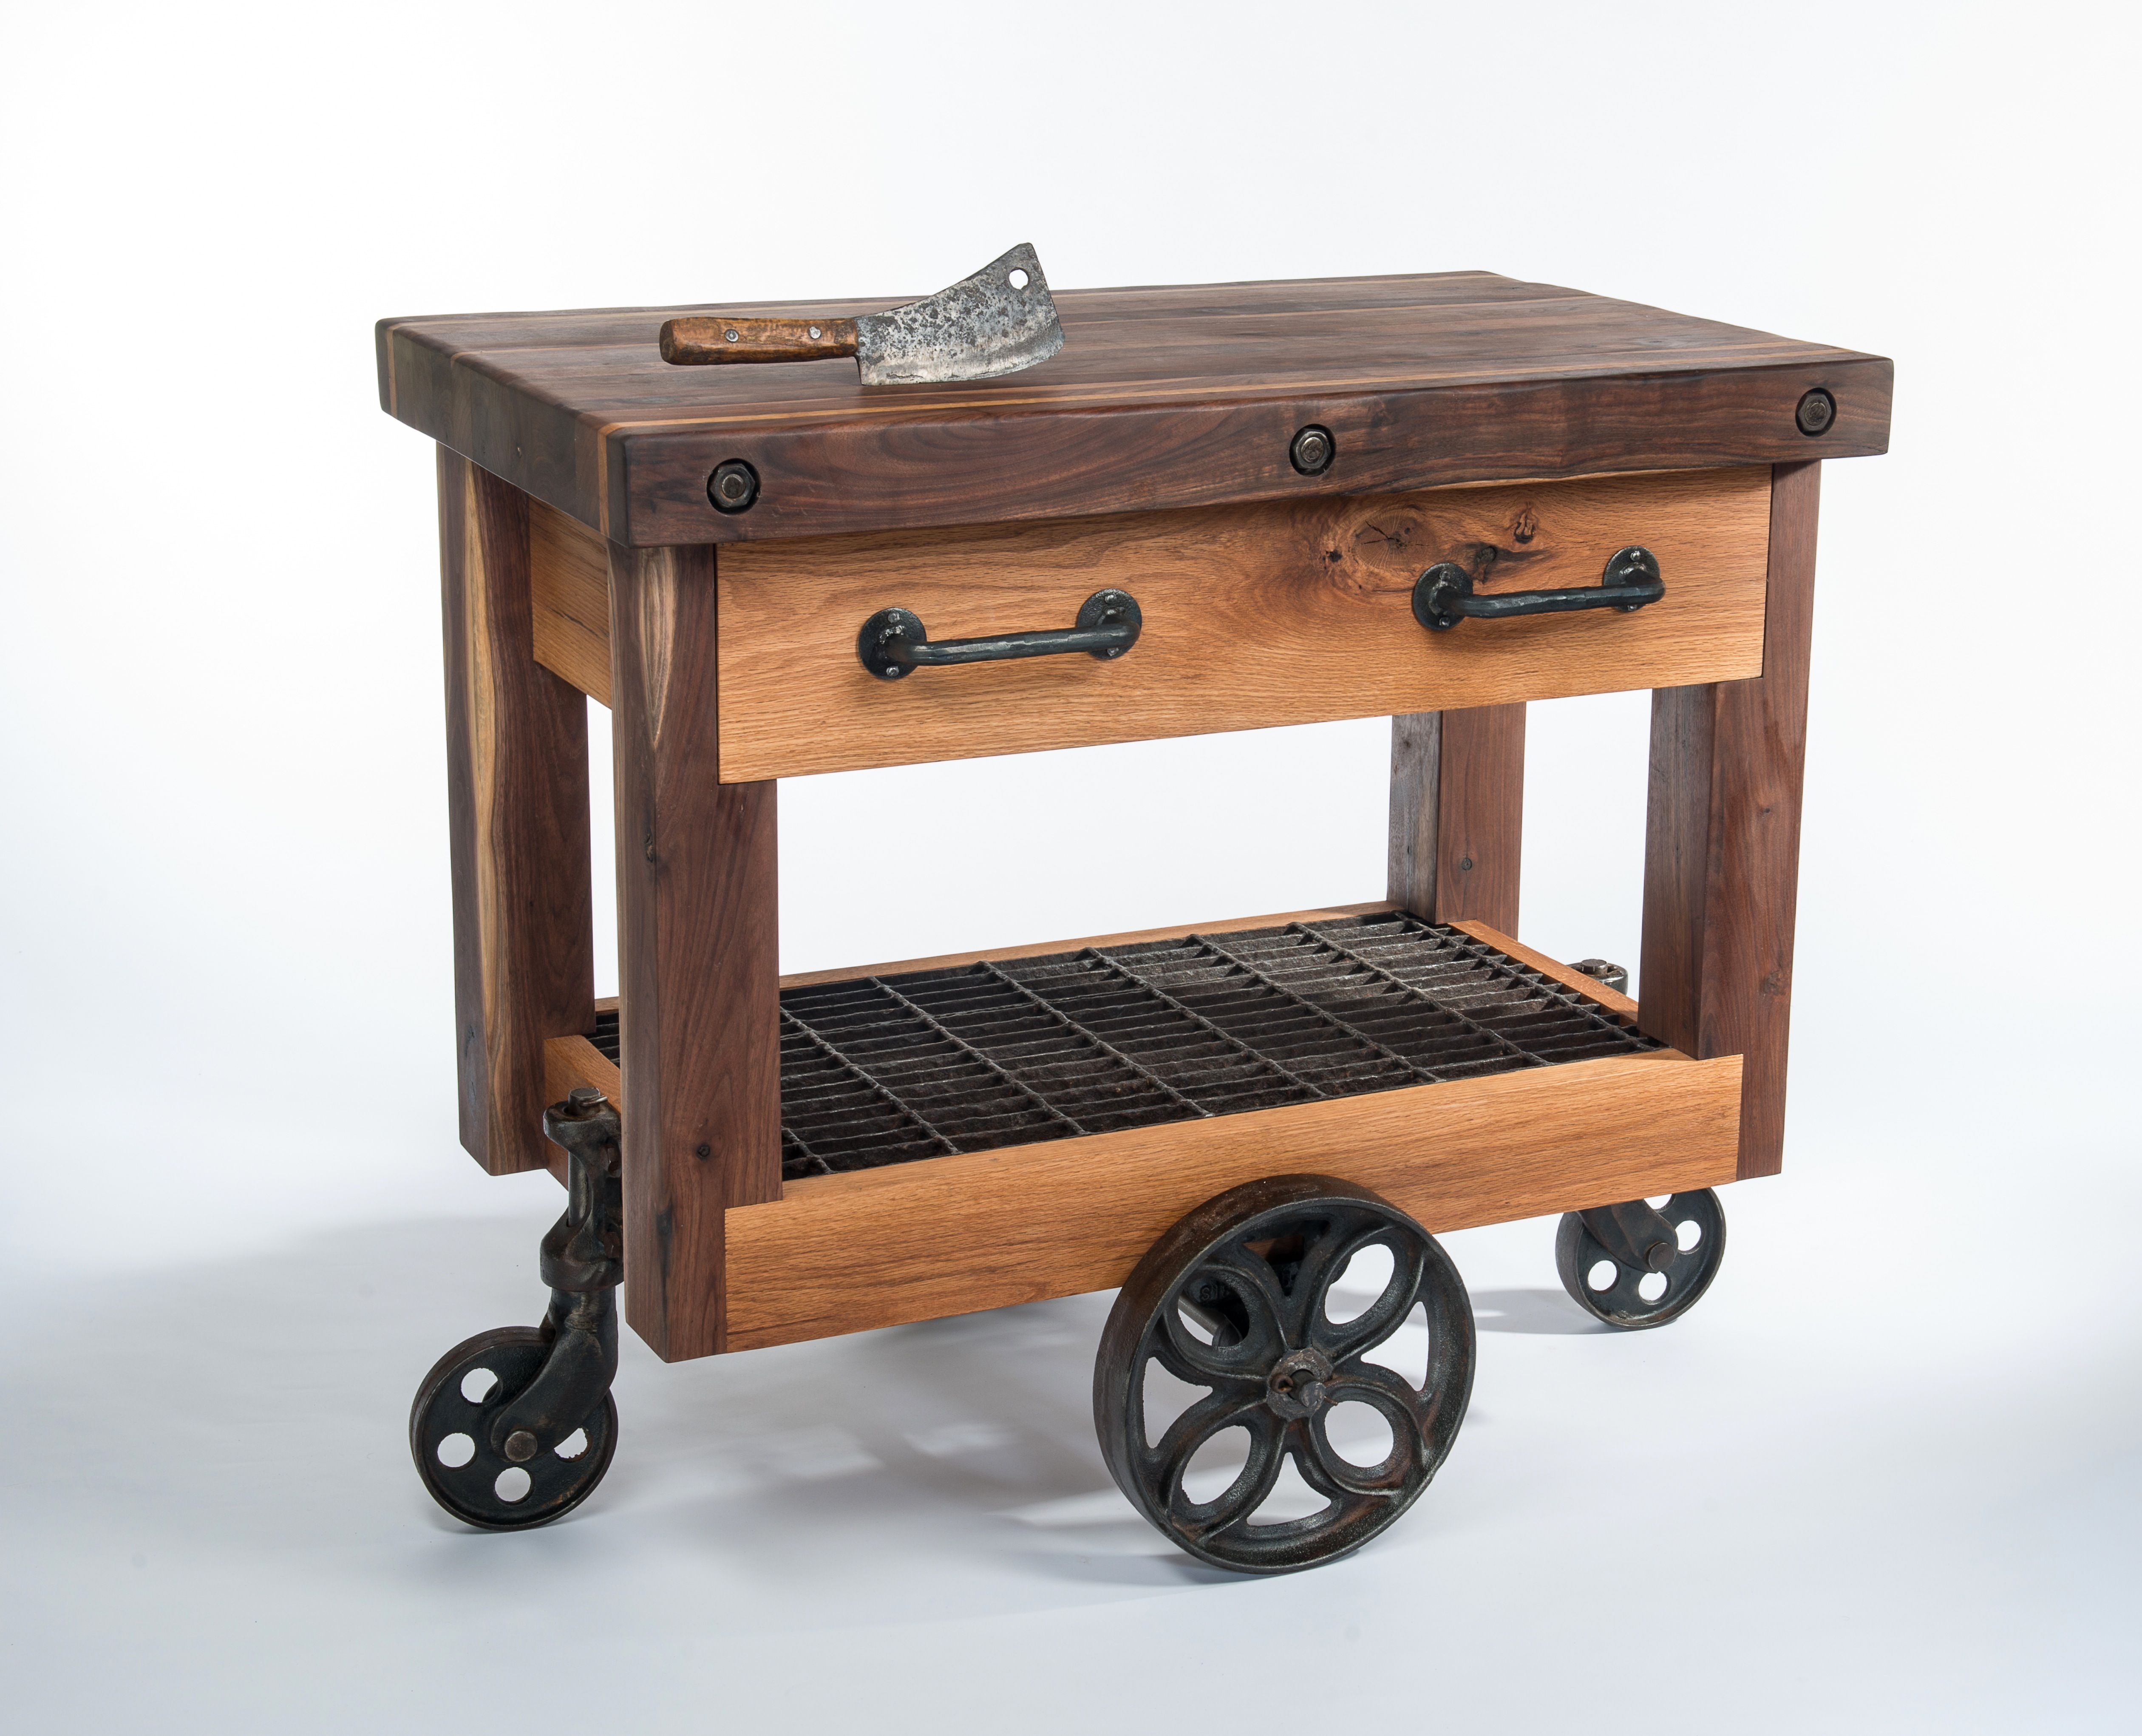 kitchen block on wheels hotel rooms with kitchens new lineberry factory cart butcher island walnut wood works